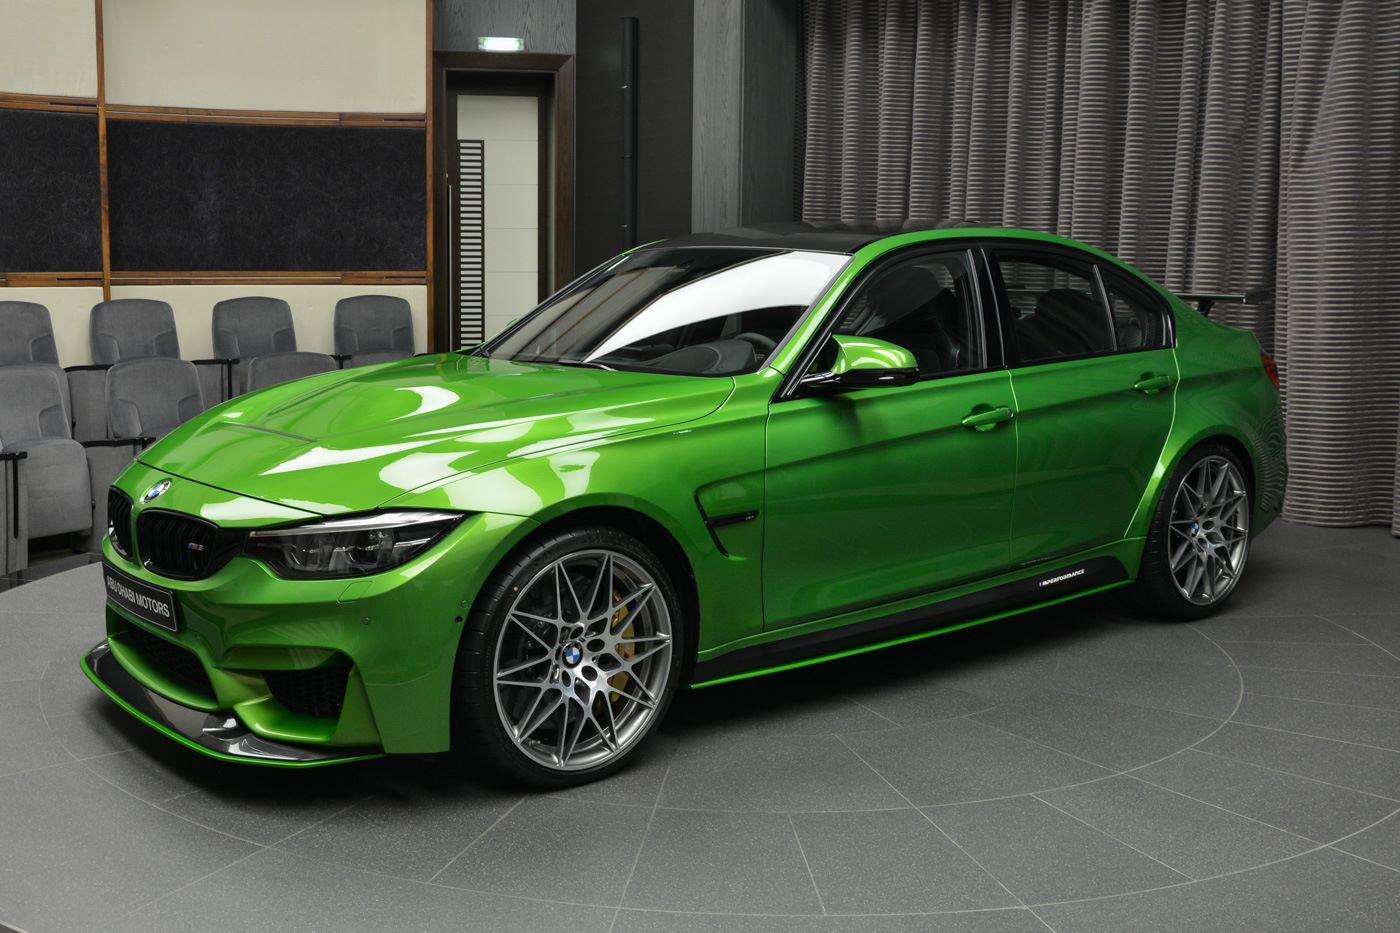 bmwm3_Java Green BMW M3 Dripping In M Performance Parts Looks Glorious